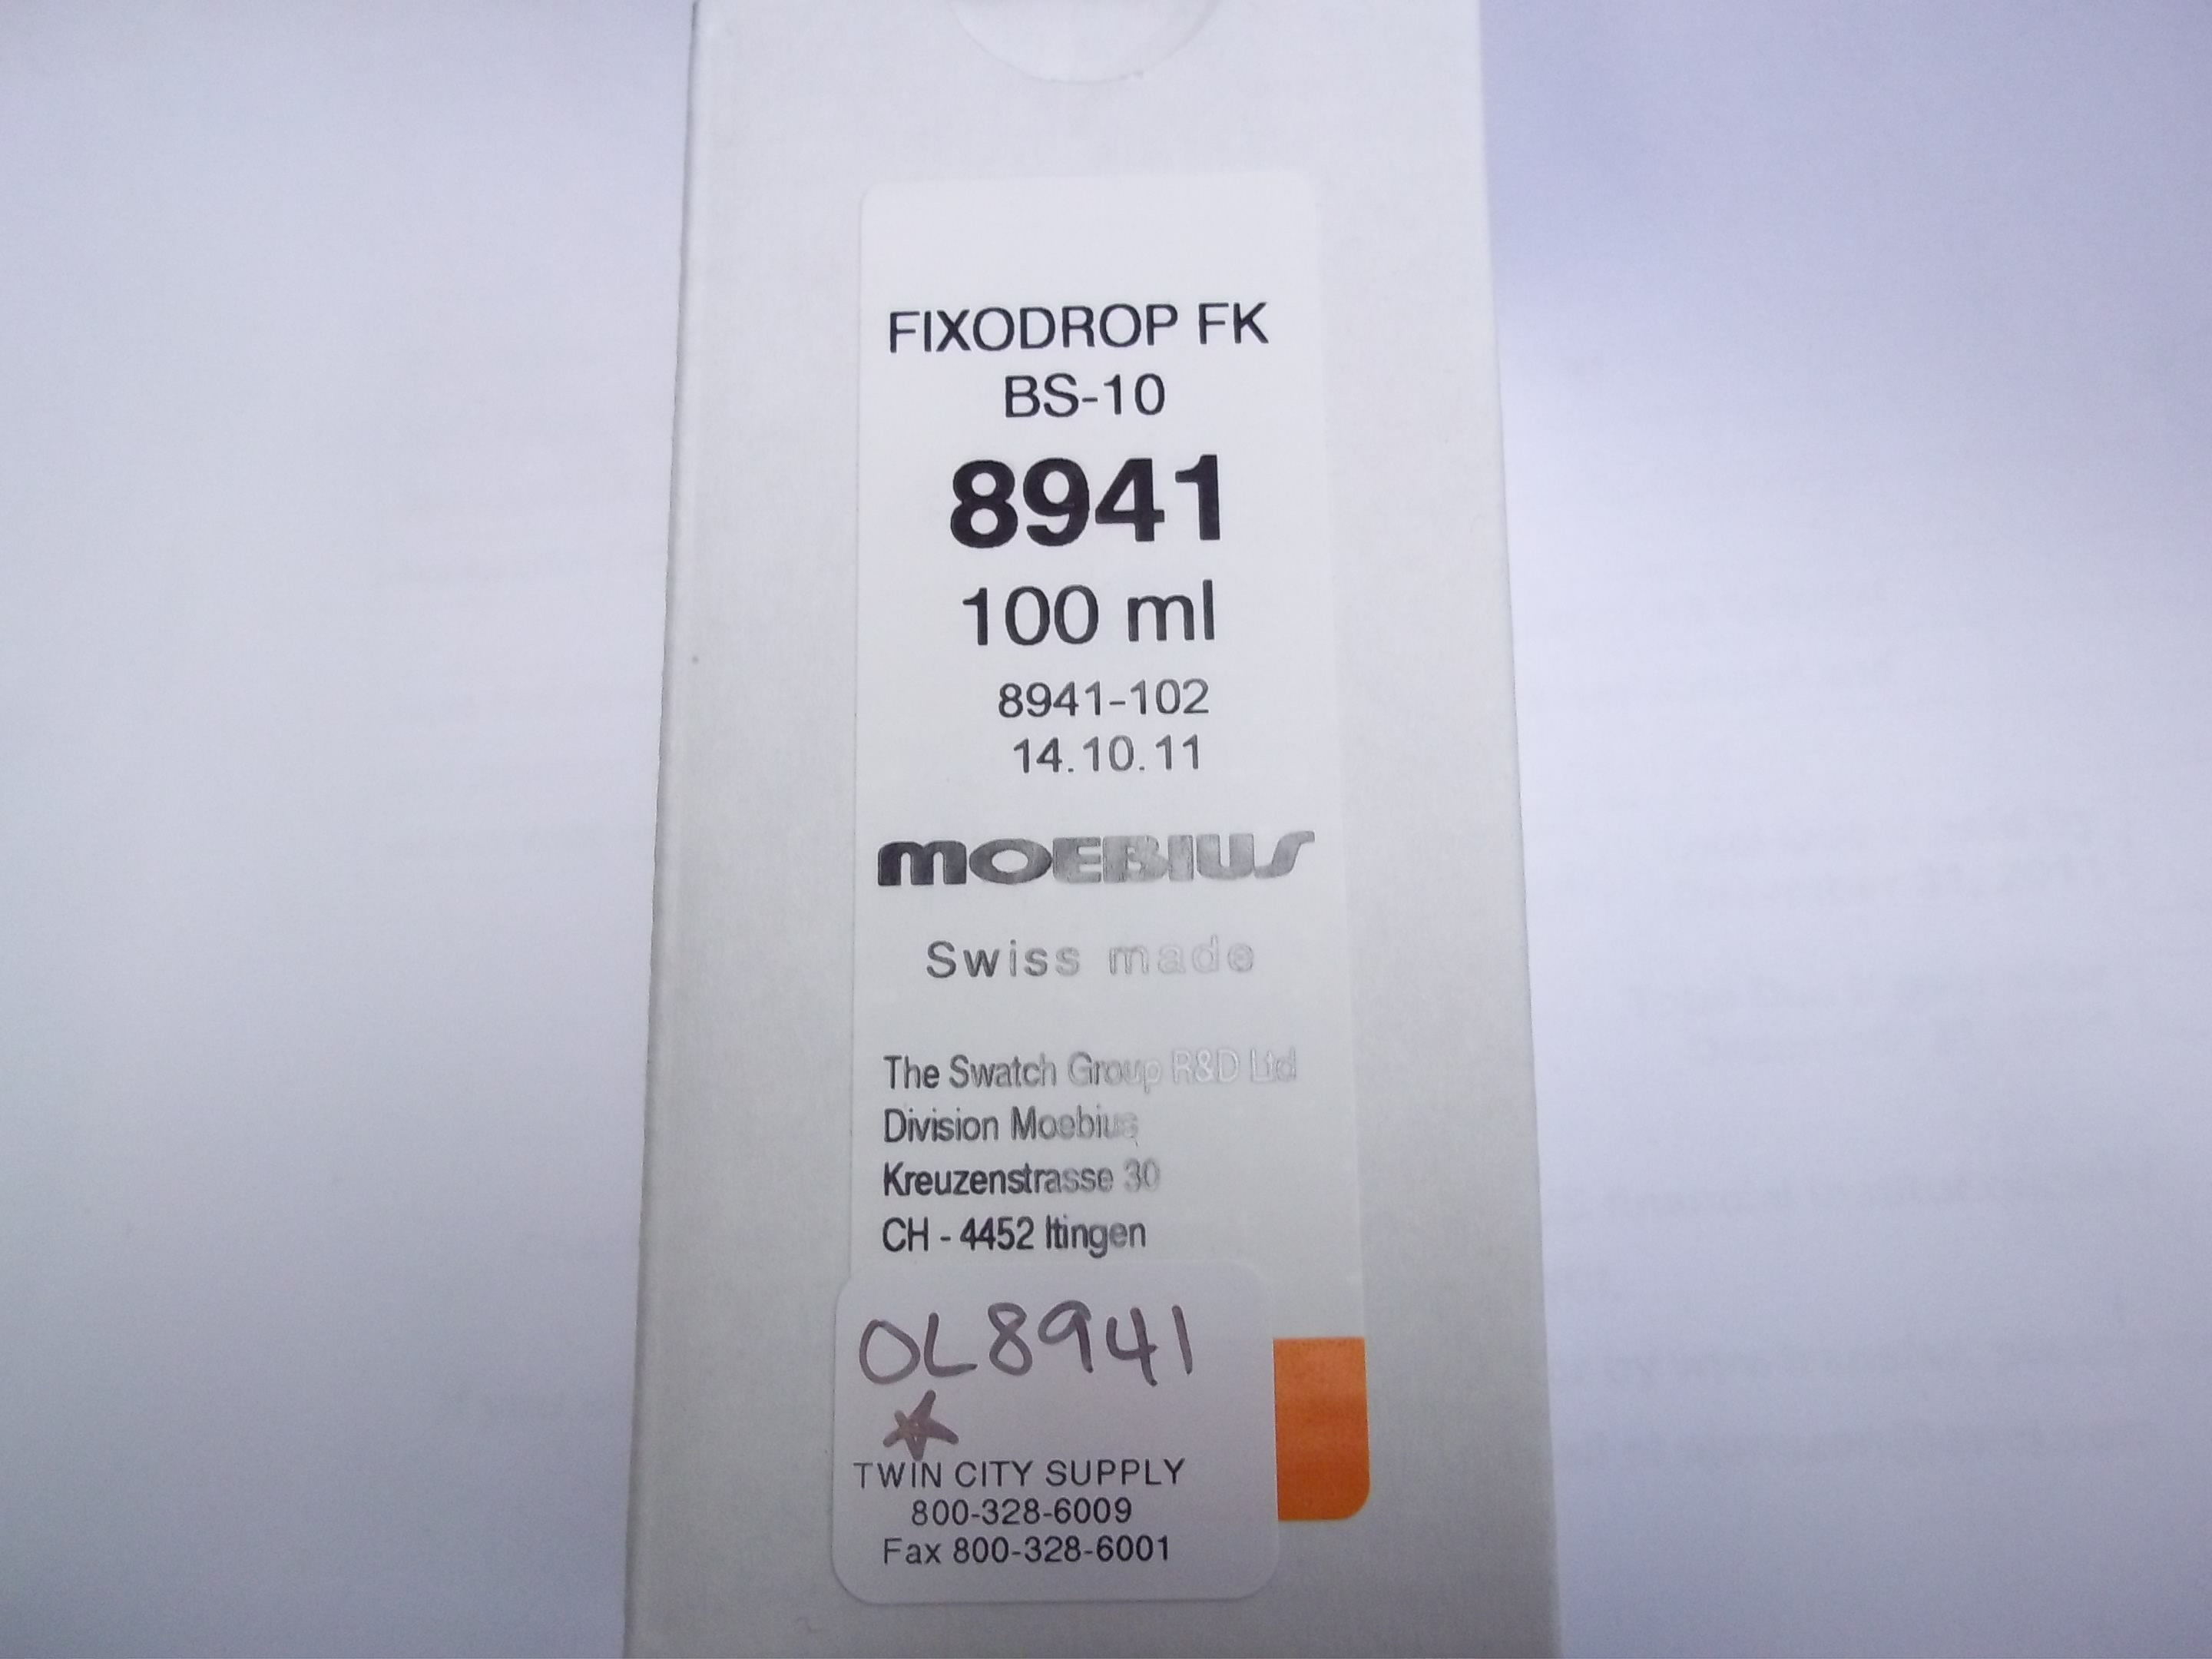 OL8941 FixoDrop FK BS-10 100ml bottle--by Moebius/special order only